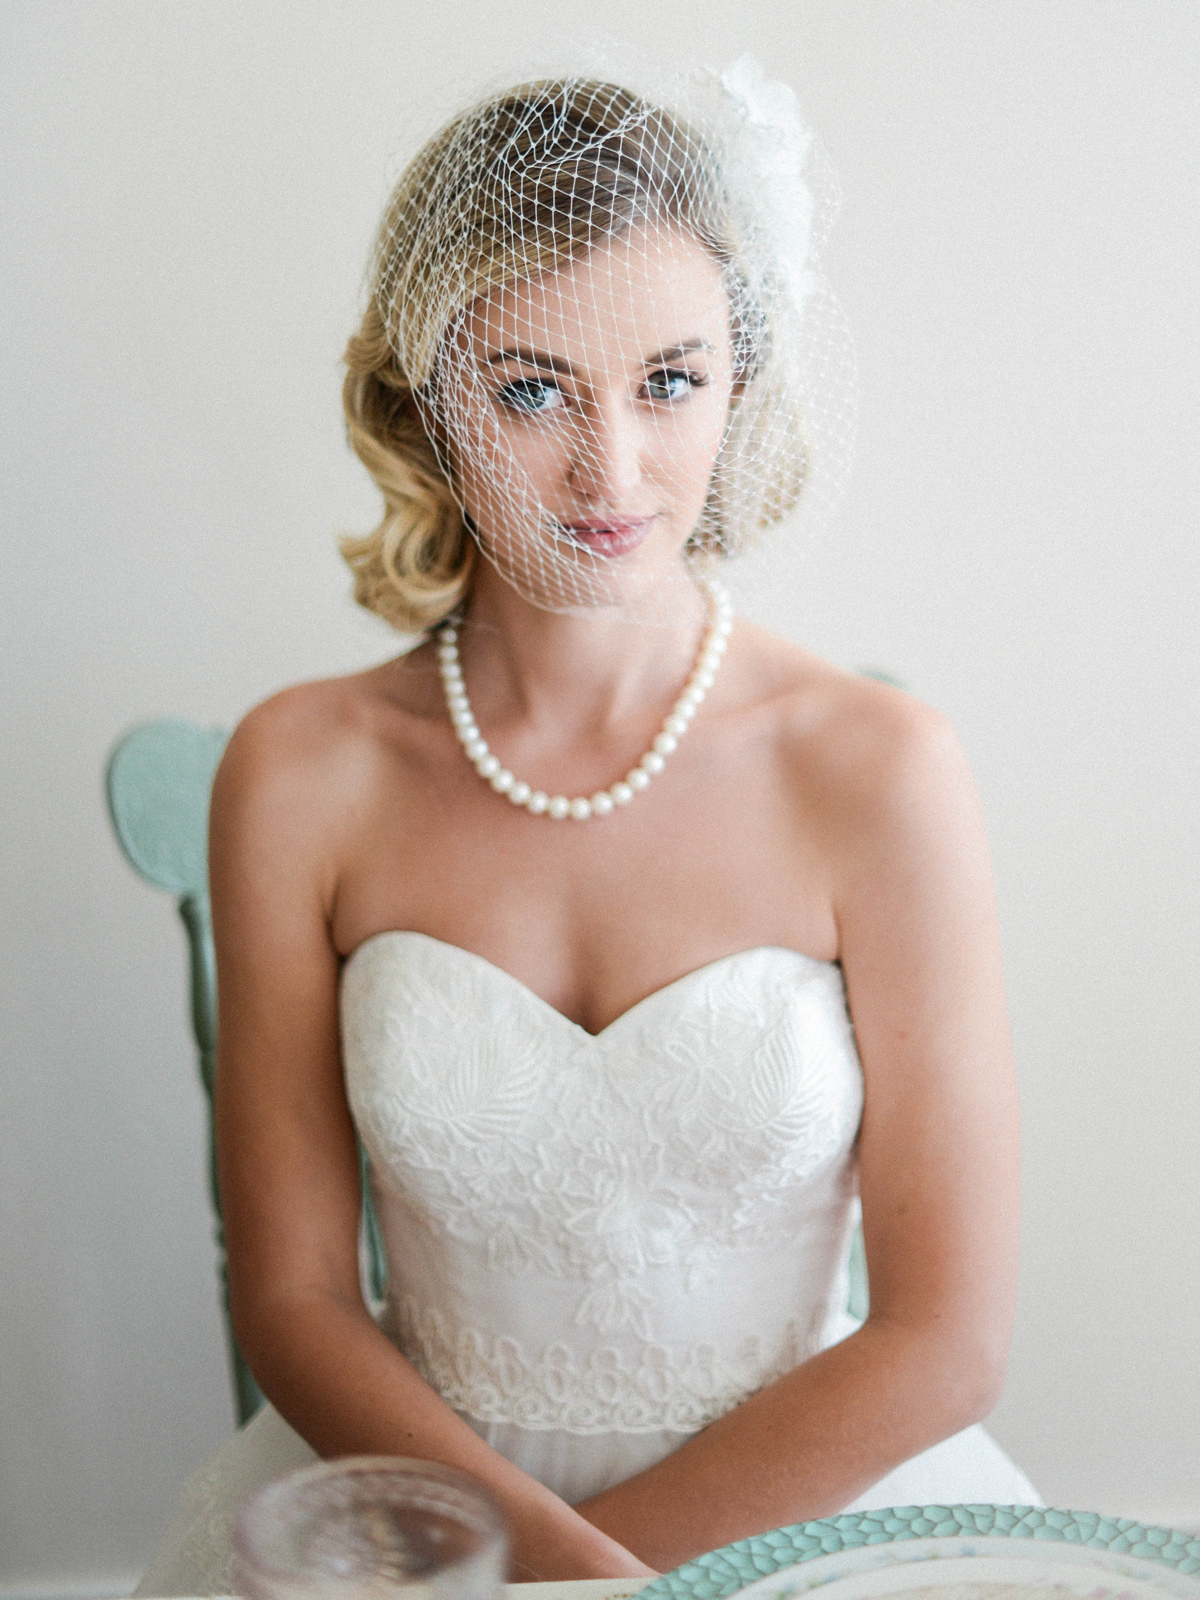 Anchored-in-Love-Spring-Focus-On-the-Coast-Weddings-Styled-Shoot-1249